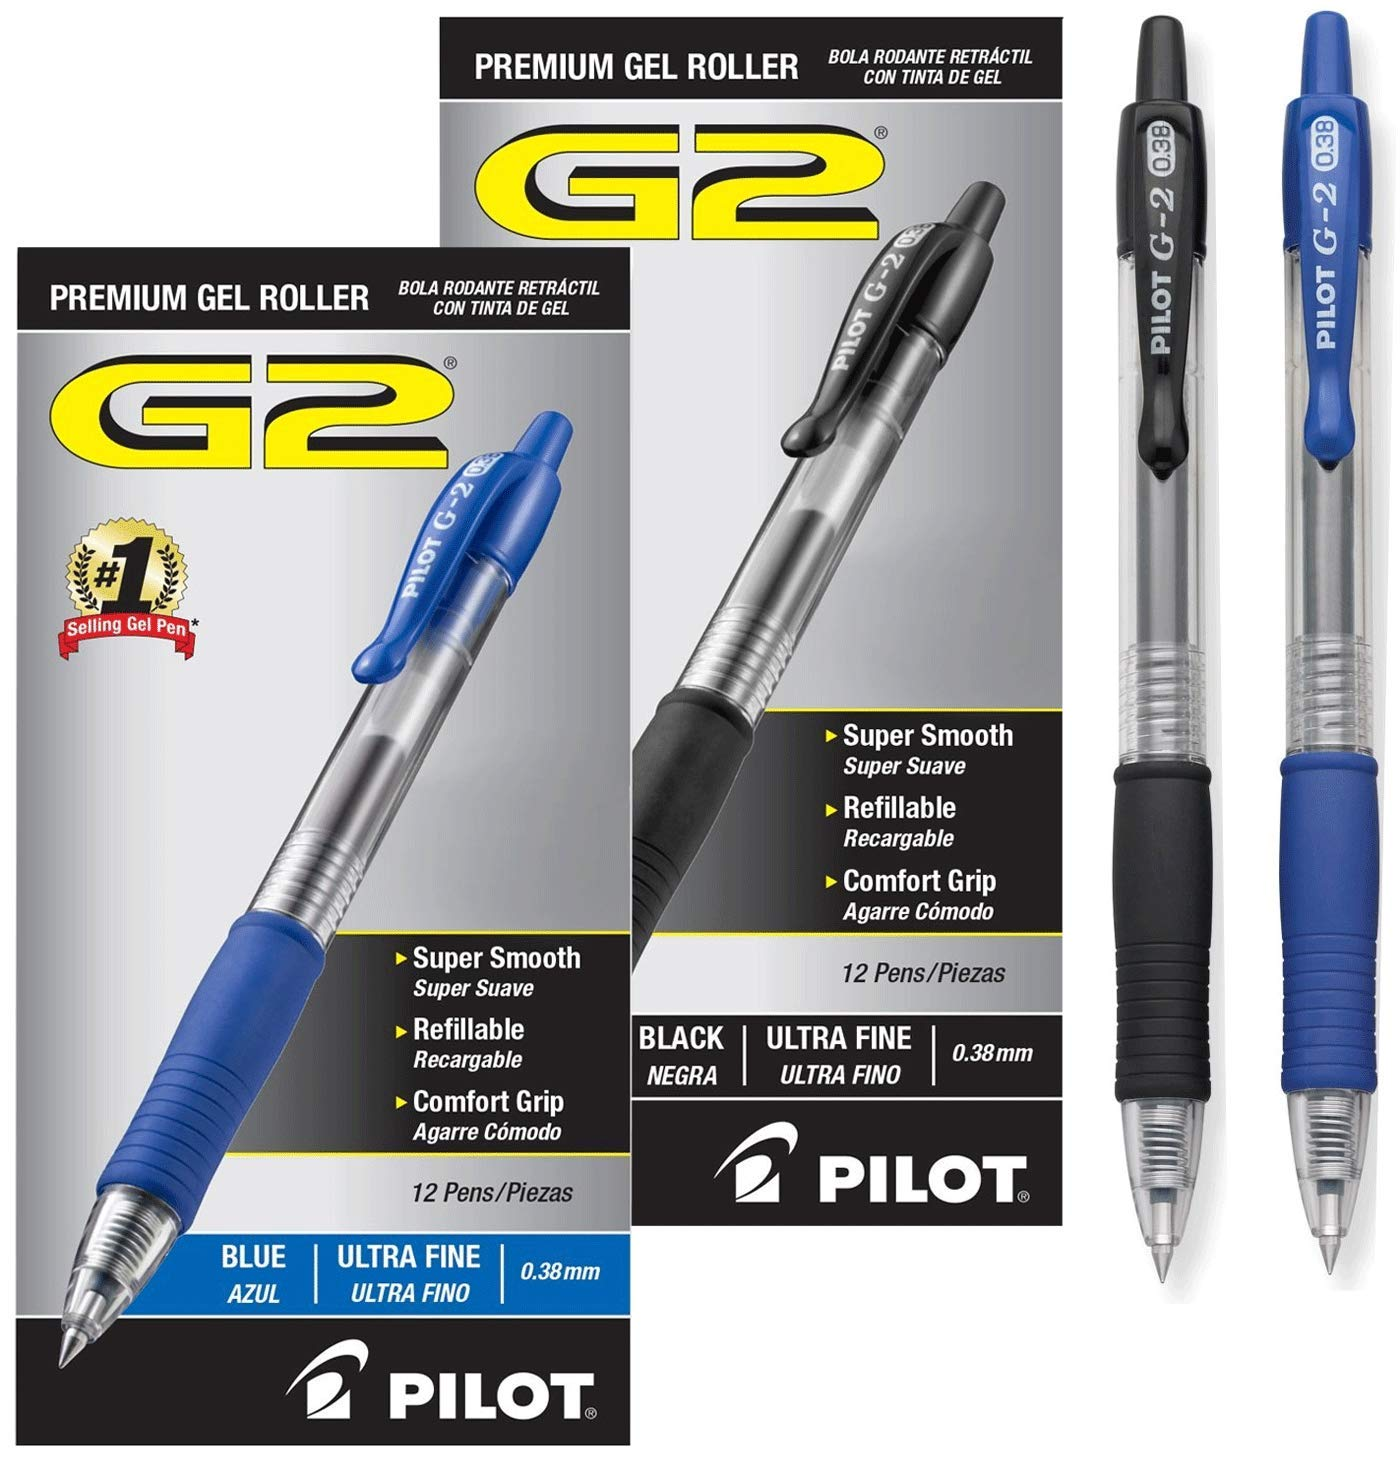 Pilot G2 Retractable Premium Gel Ink Roller Ball Pens Ultra Fine Dozen Box Black ; Retractable, Refillable & Premium Comfort Grip; Smooth Lines to the End of the Page